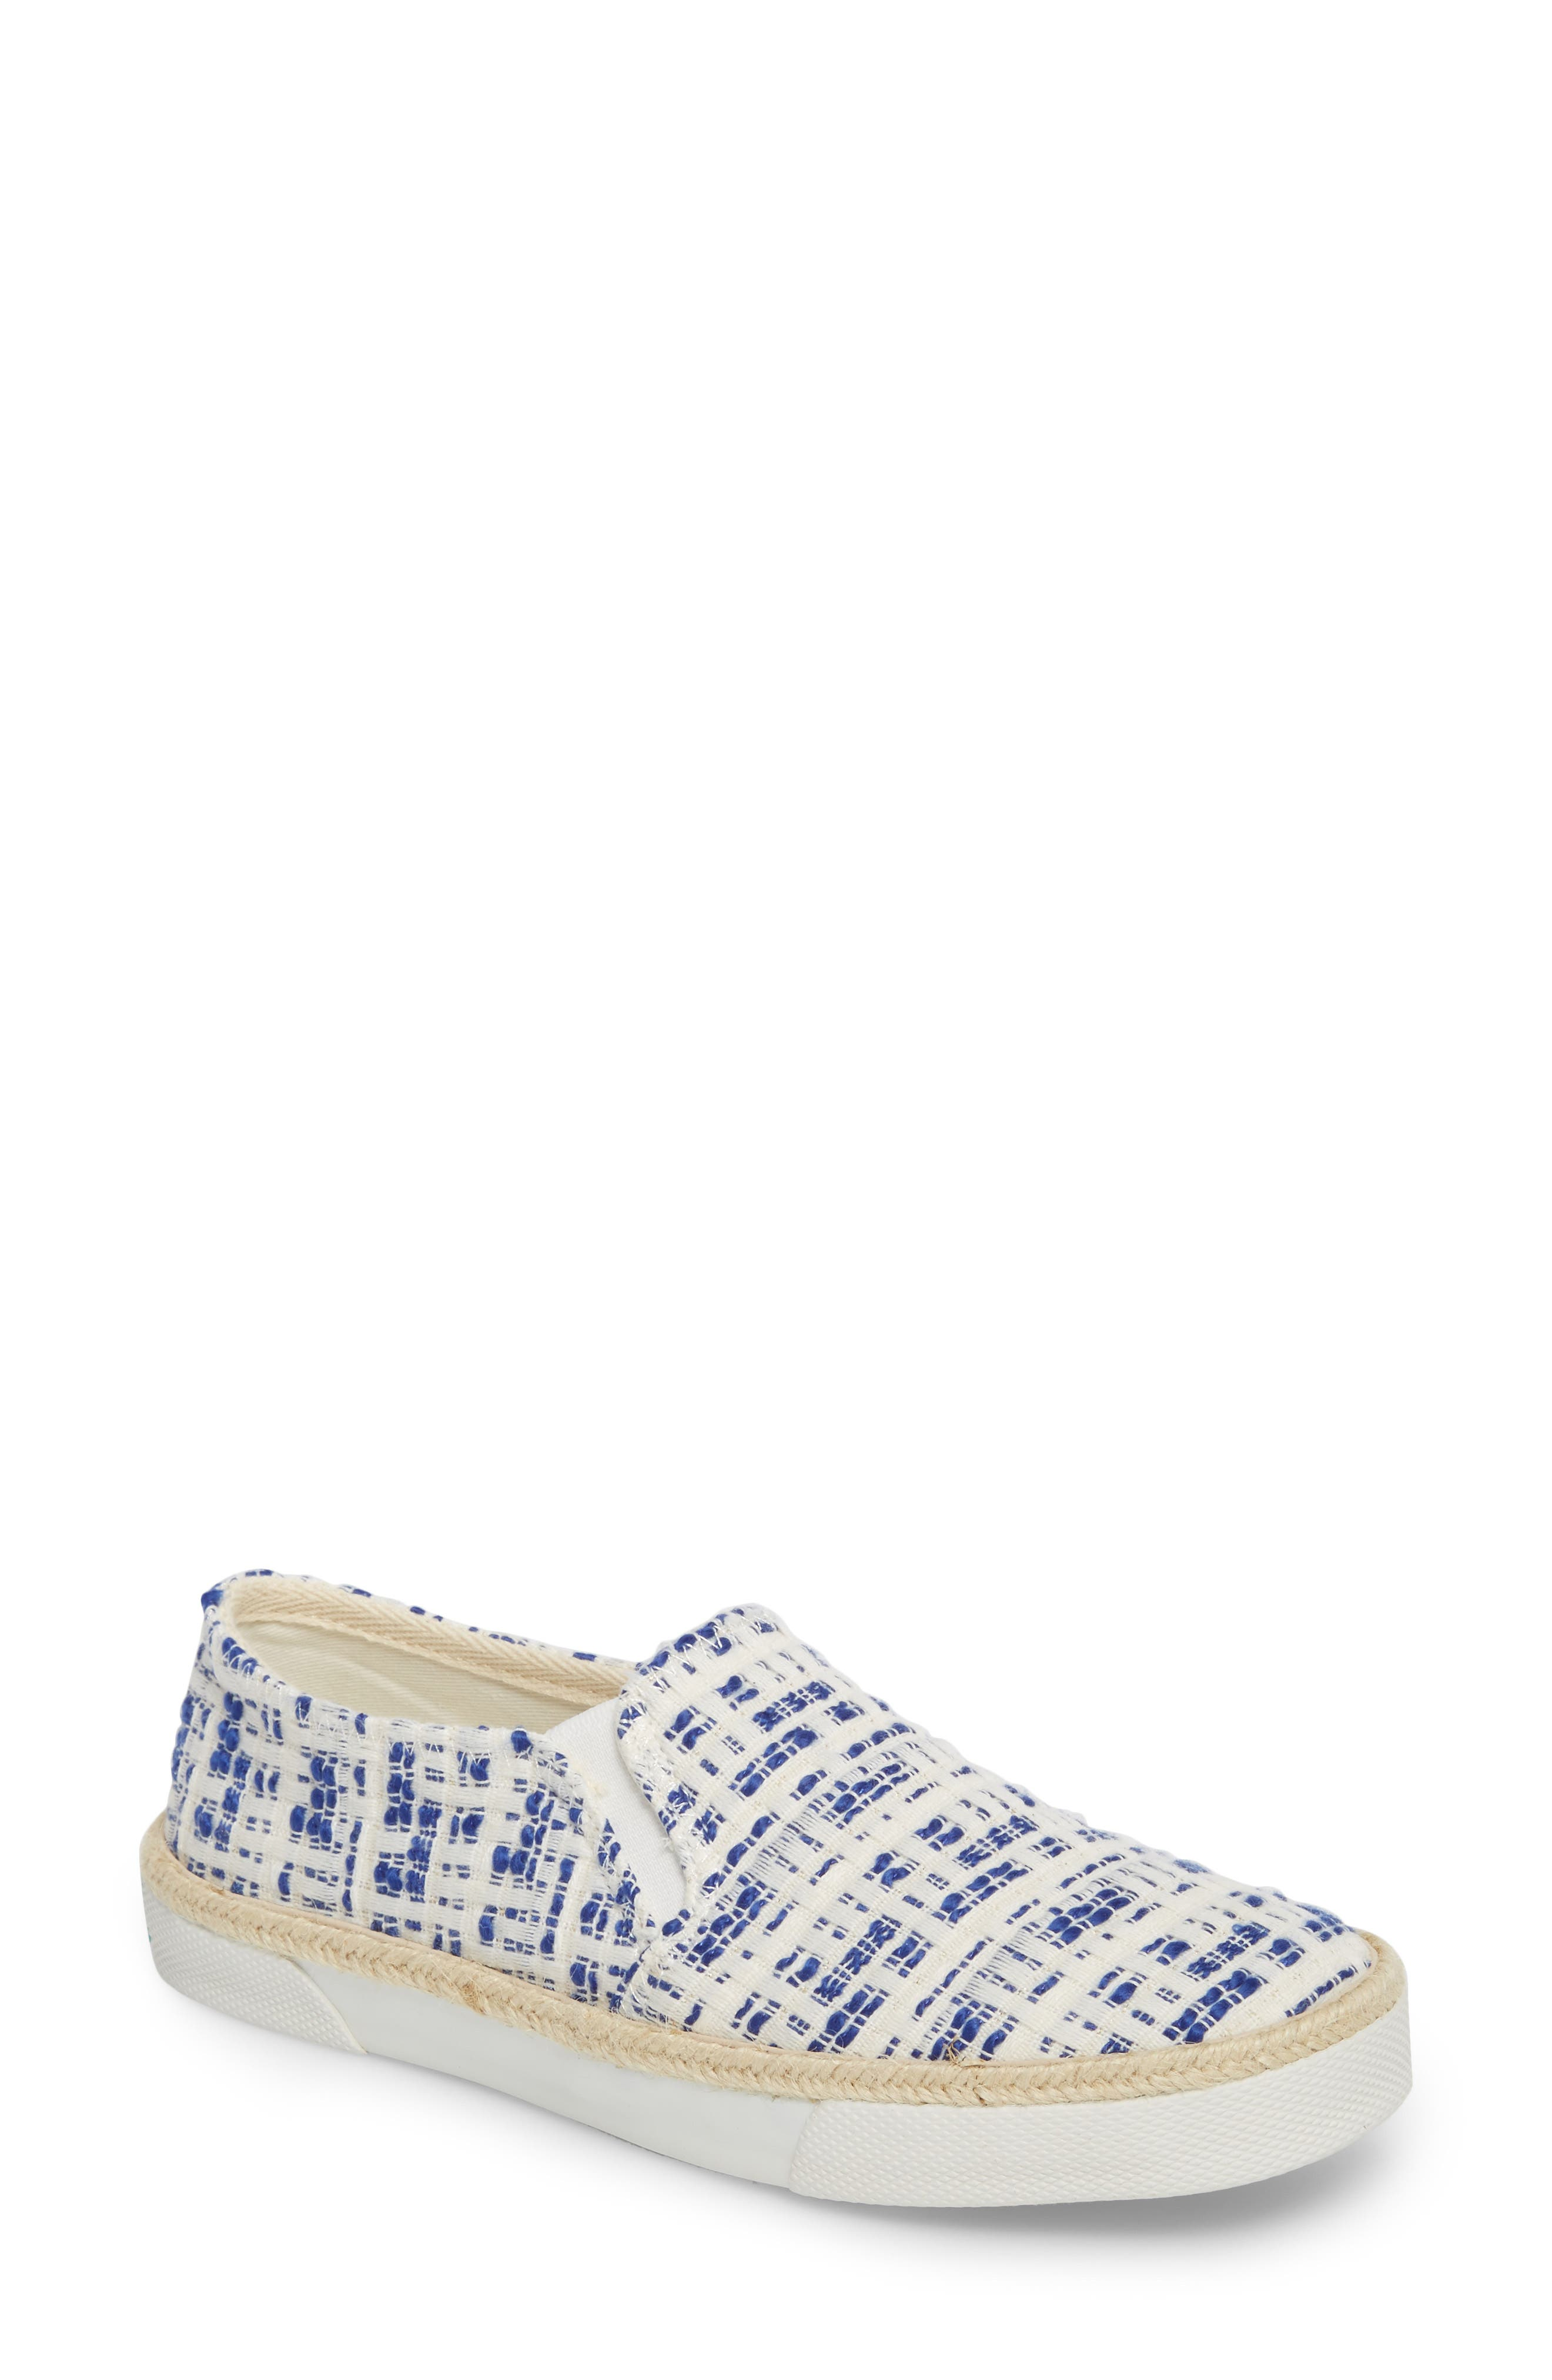 Tucker Slip-On Sneaker,                         Main,                         color, Royal Blue